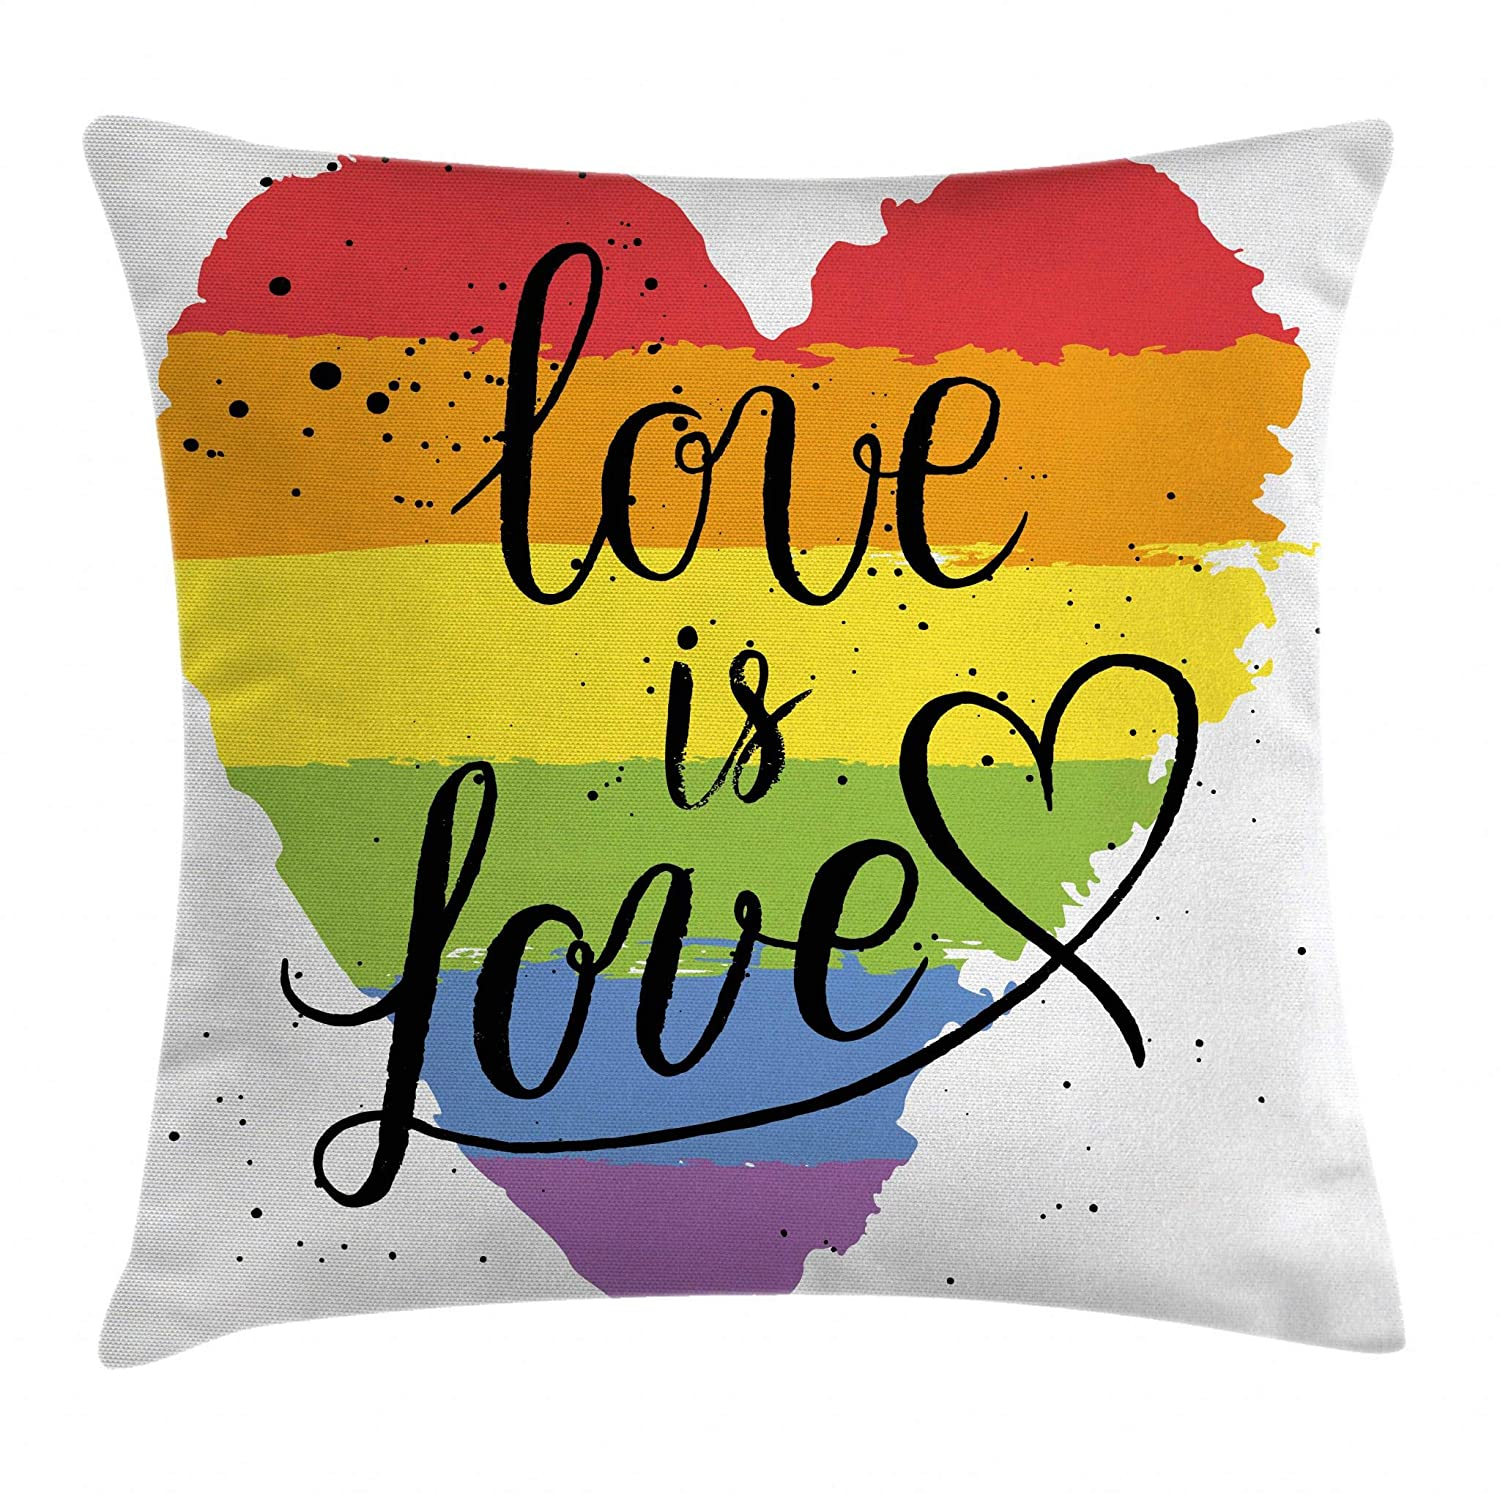 "Ambesonne Pride Throw Pillow Cushion Cover, LGBT Gay Lesbian Parade Love is Love Hand Writing Paint Strokes, Decorative Square Accent Pillow Case, 20"" X 20"", Red Black"